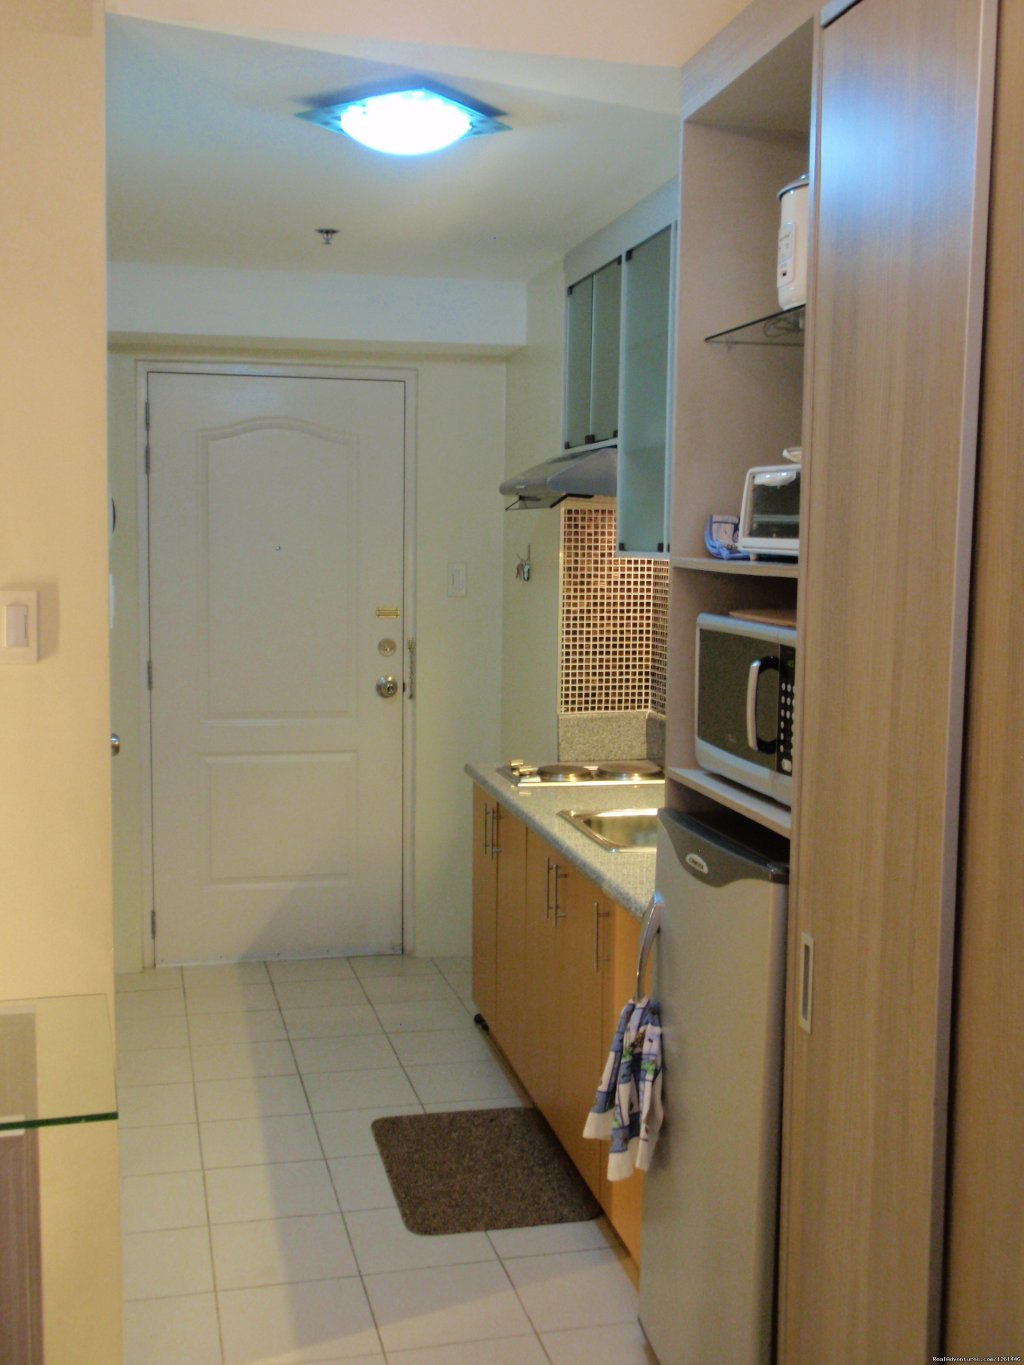 25th Floor Unit Kitchen | Image #16/26 | Fully Furnished Studio-Condo Unit in Manila